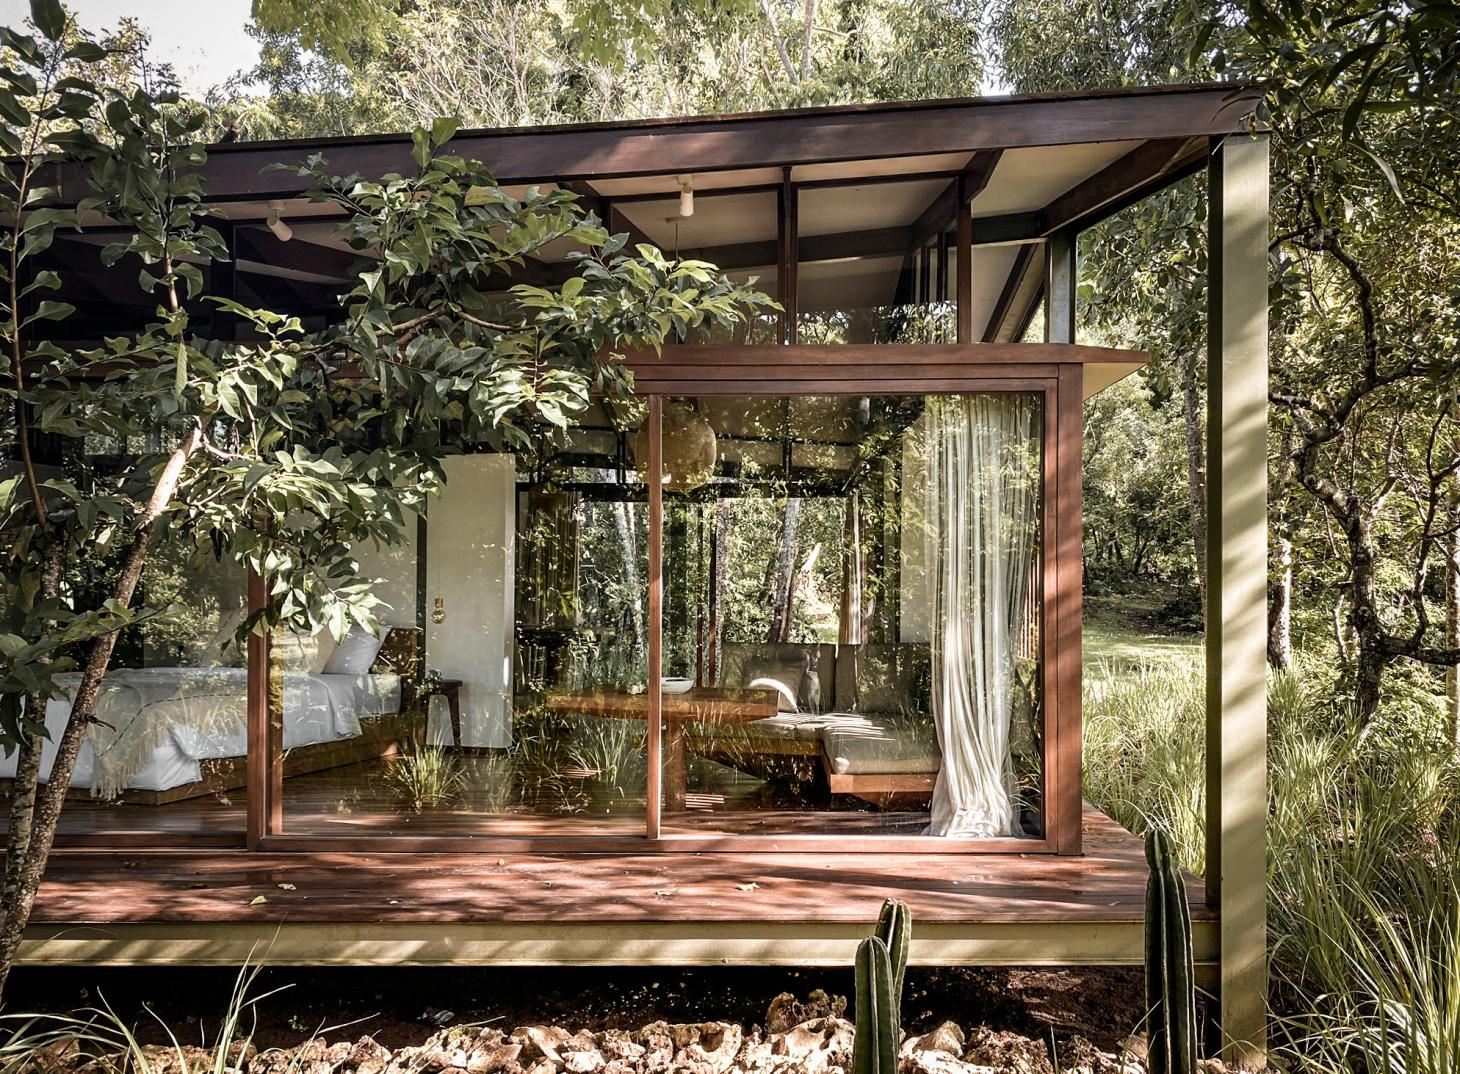 Alexis dornier's tetra pod cabin sits in the Indonesian woods